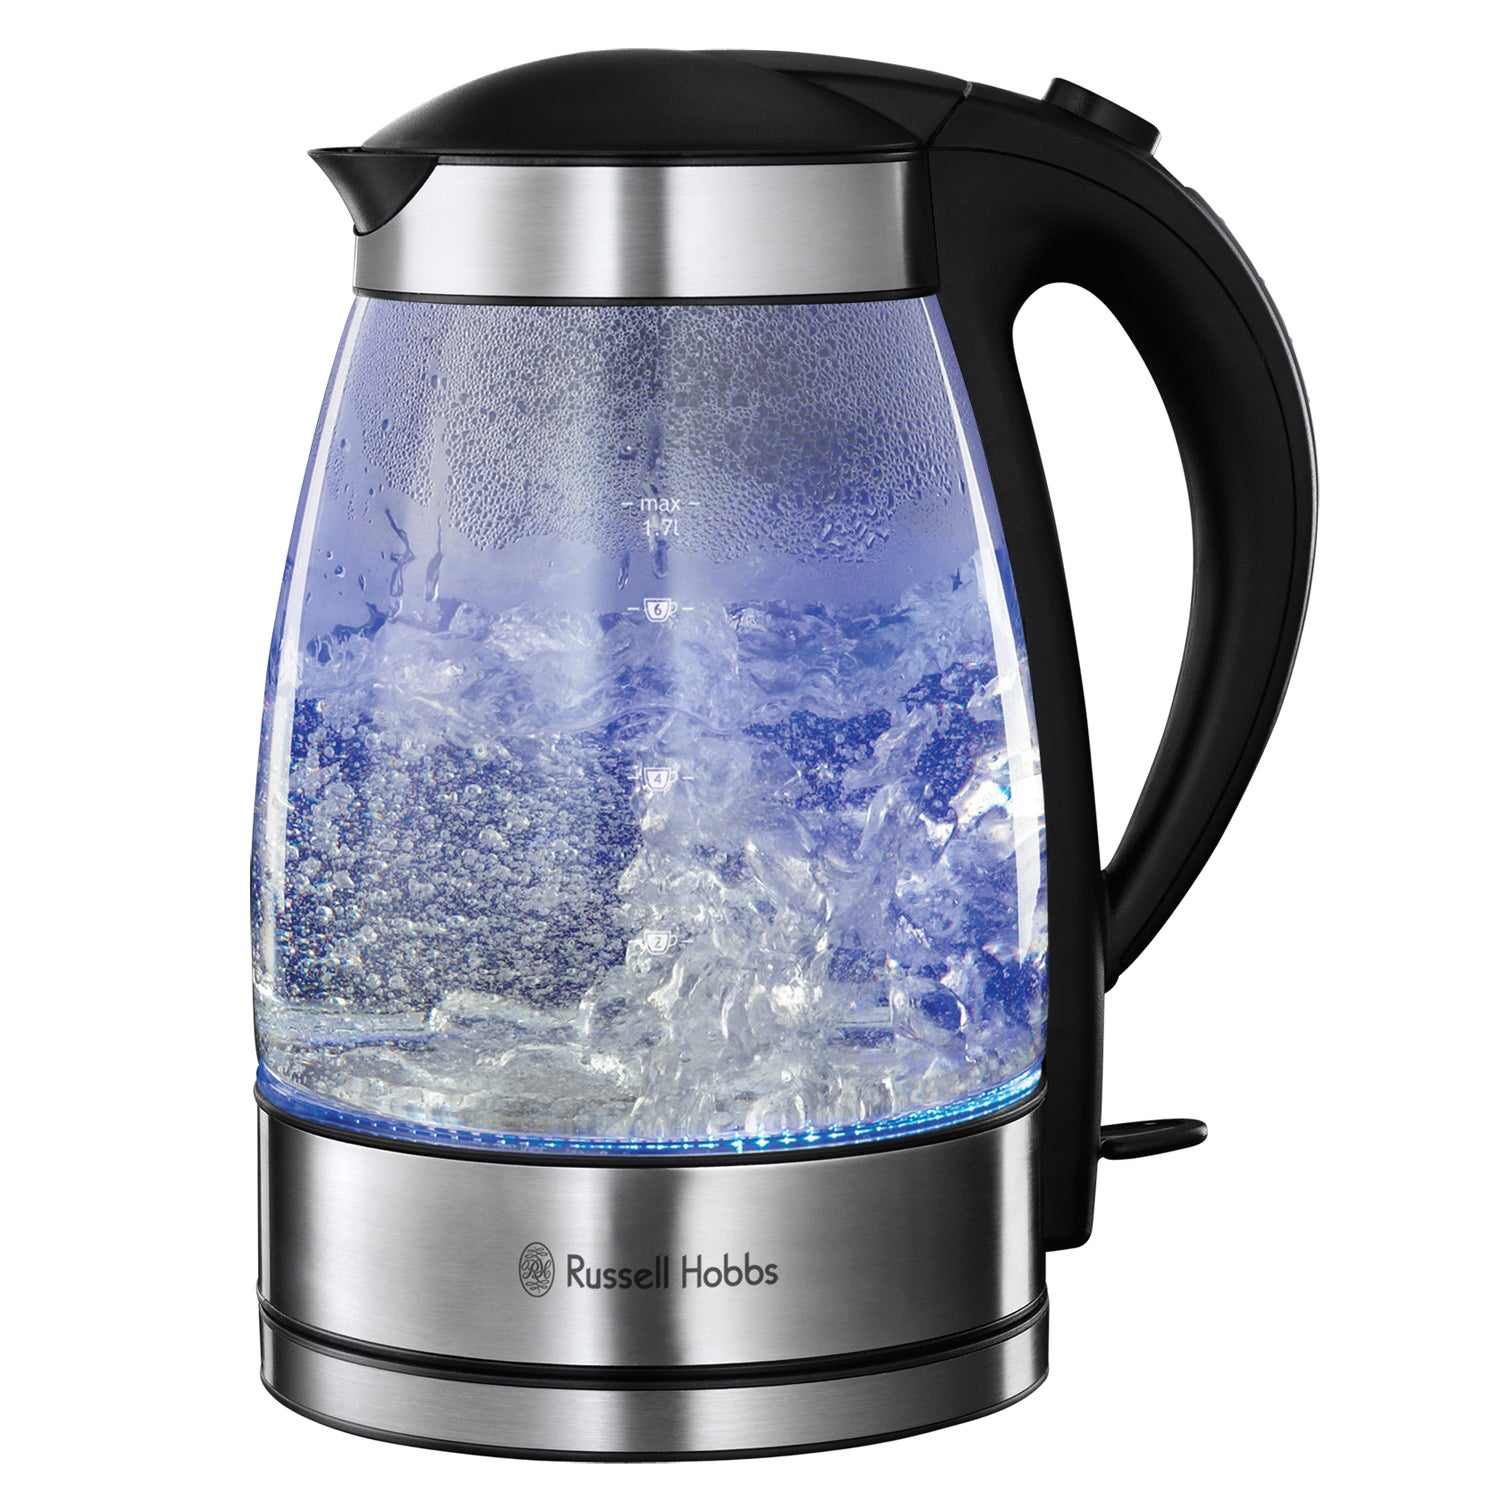 Russell Hobbs 15082 Illuminating Kettle